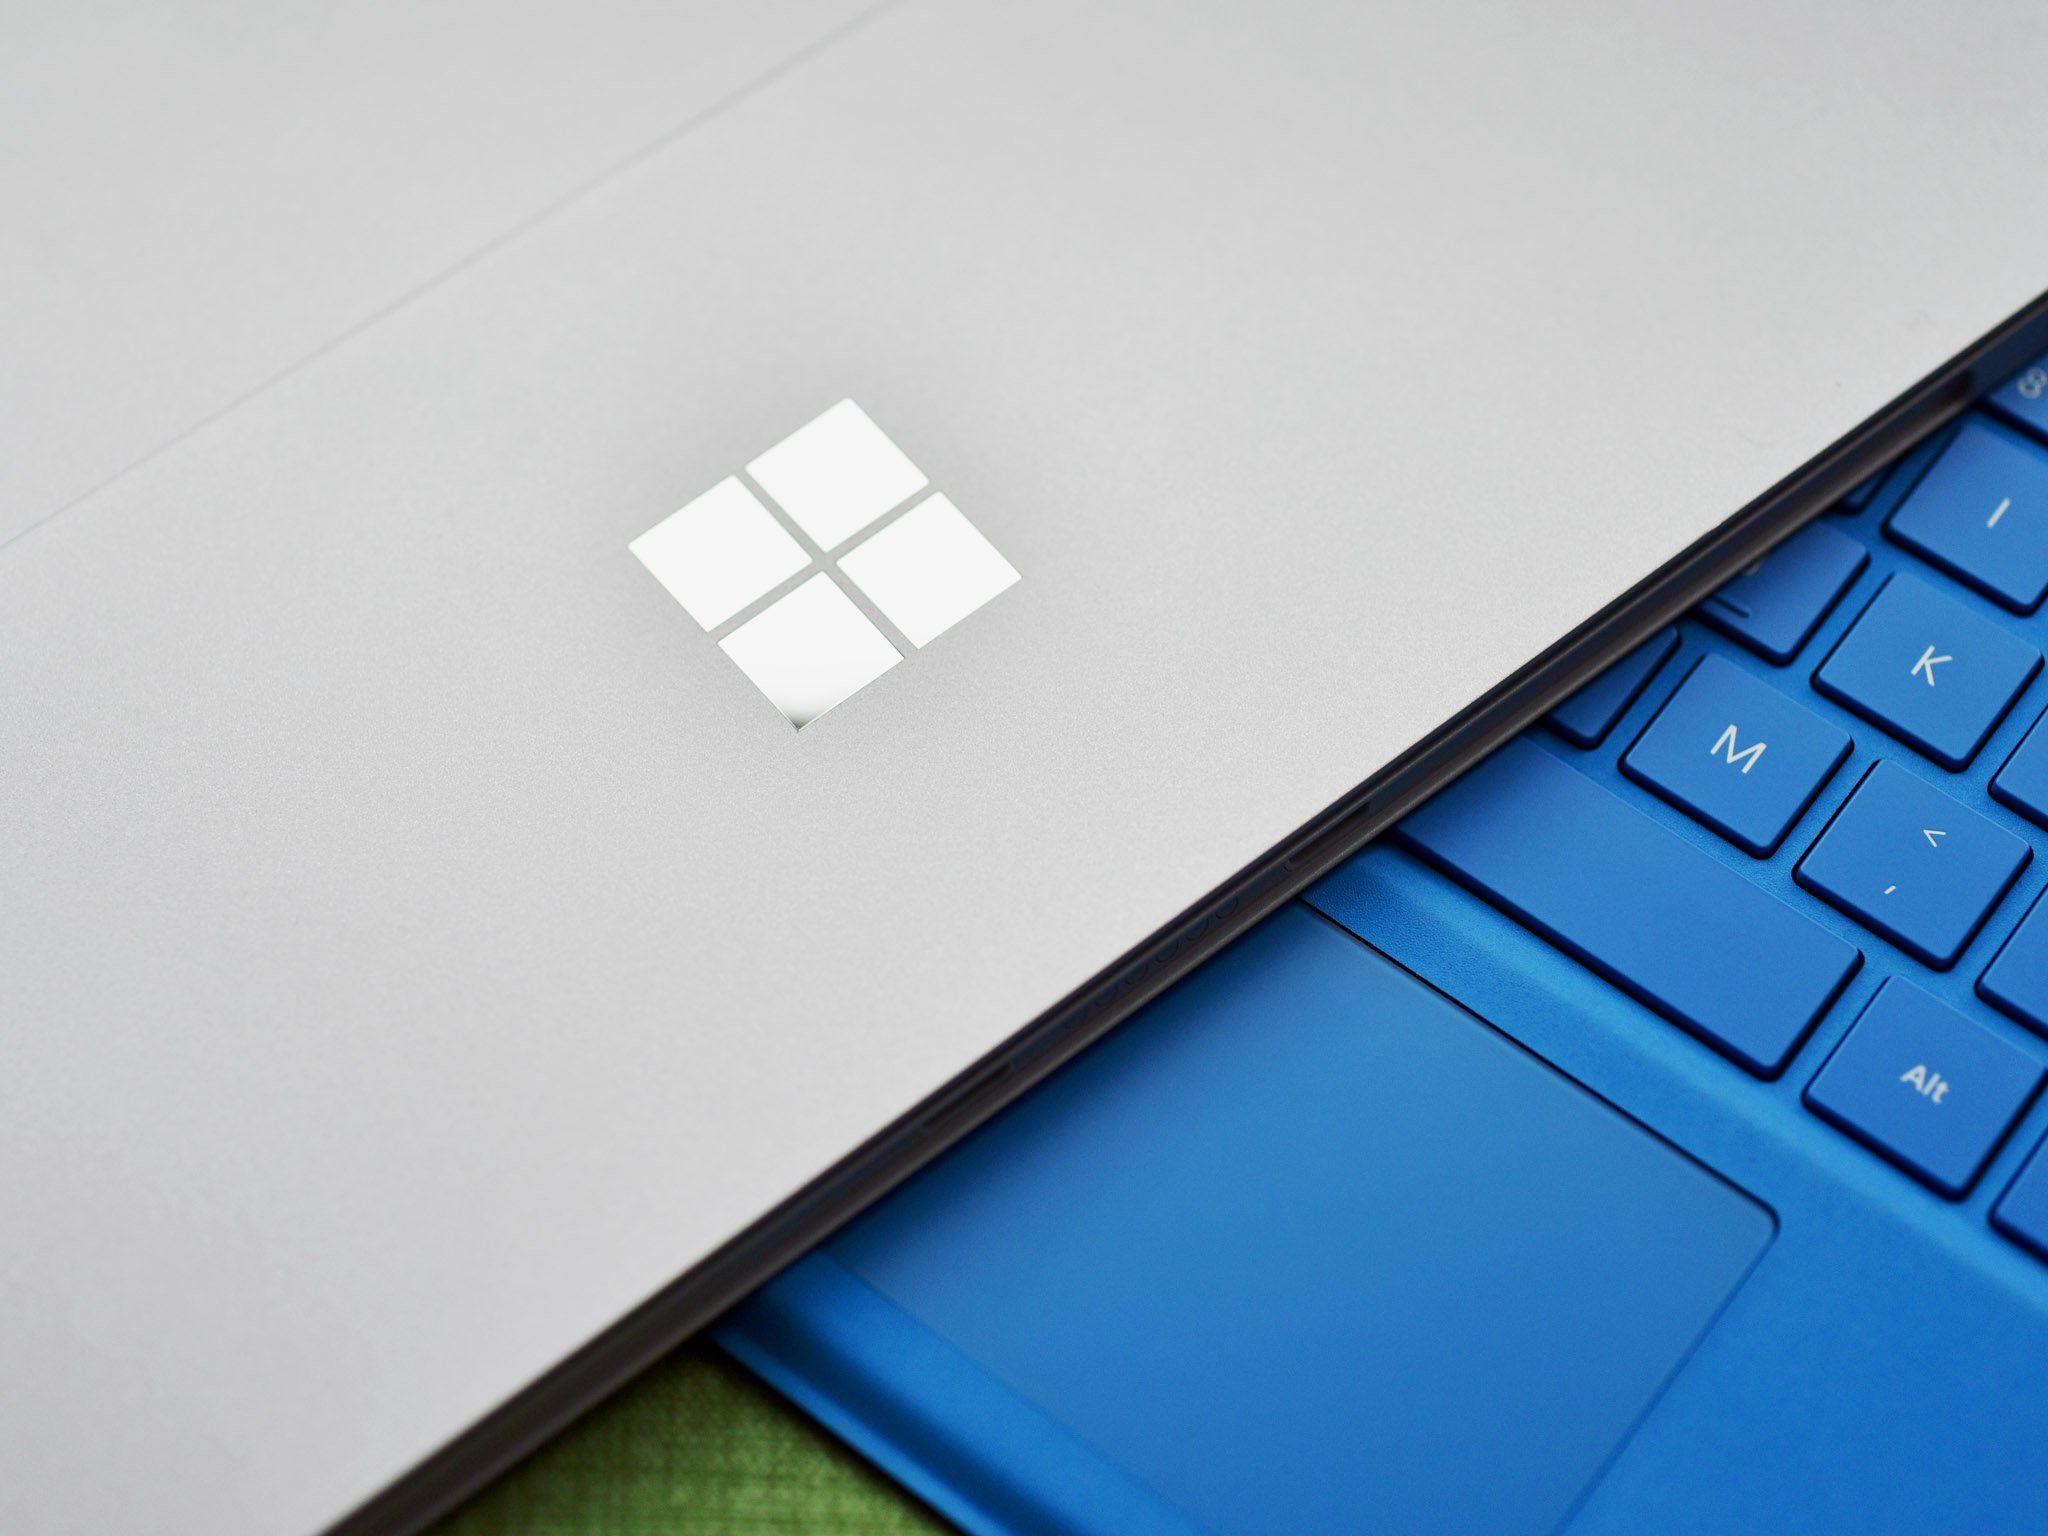 Microsoft rolls out fresh firmware updates for Surface Pro 4 and Surface Book